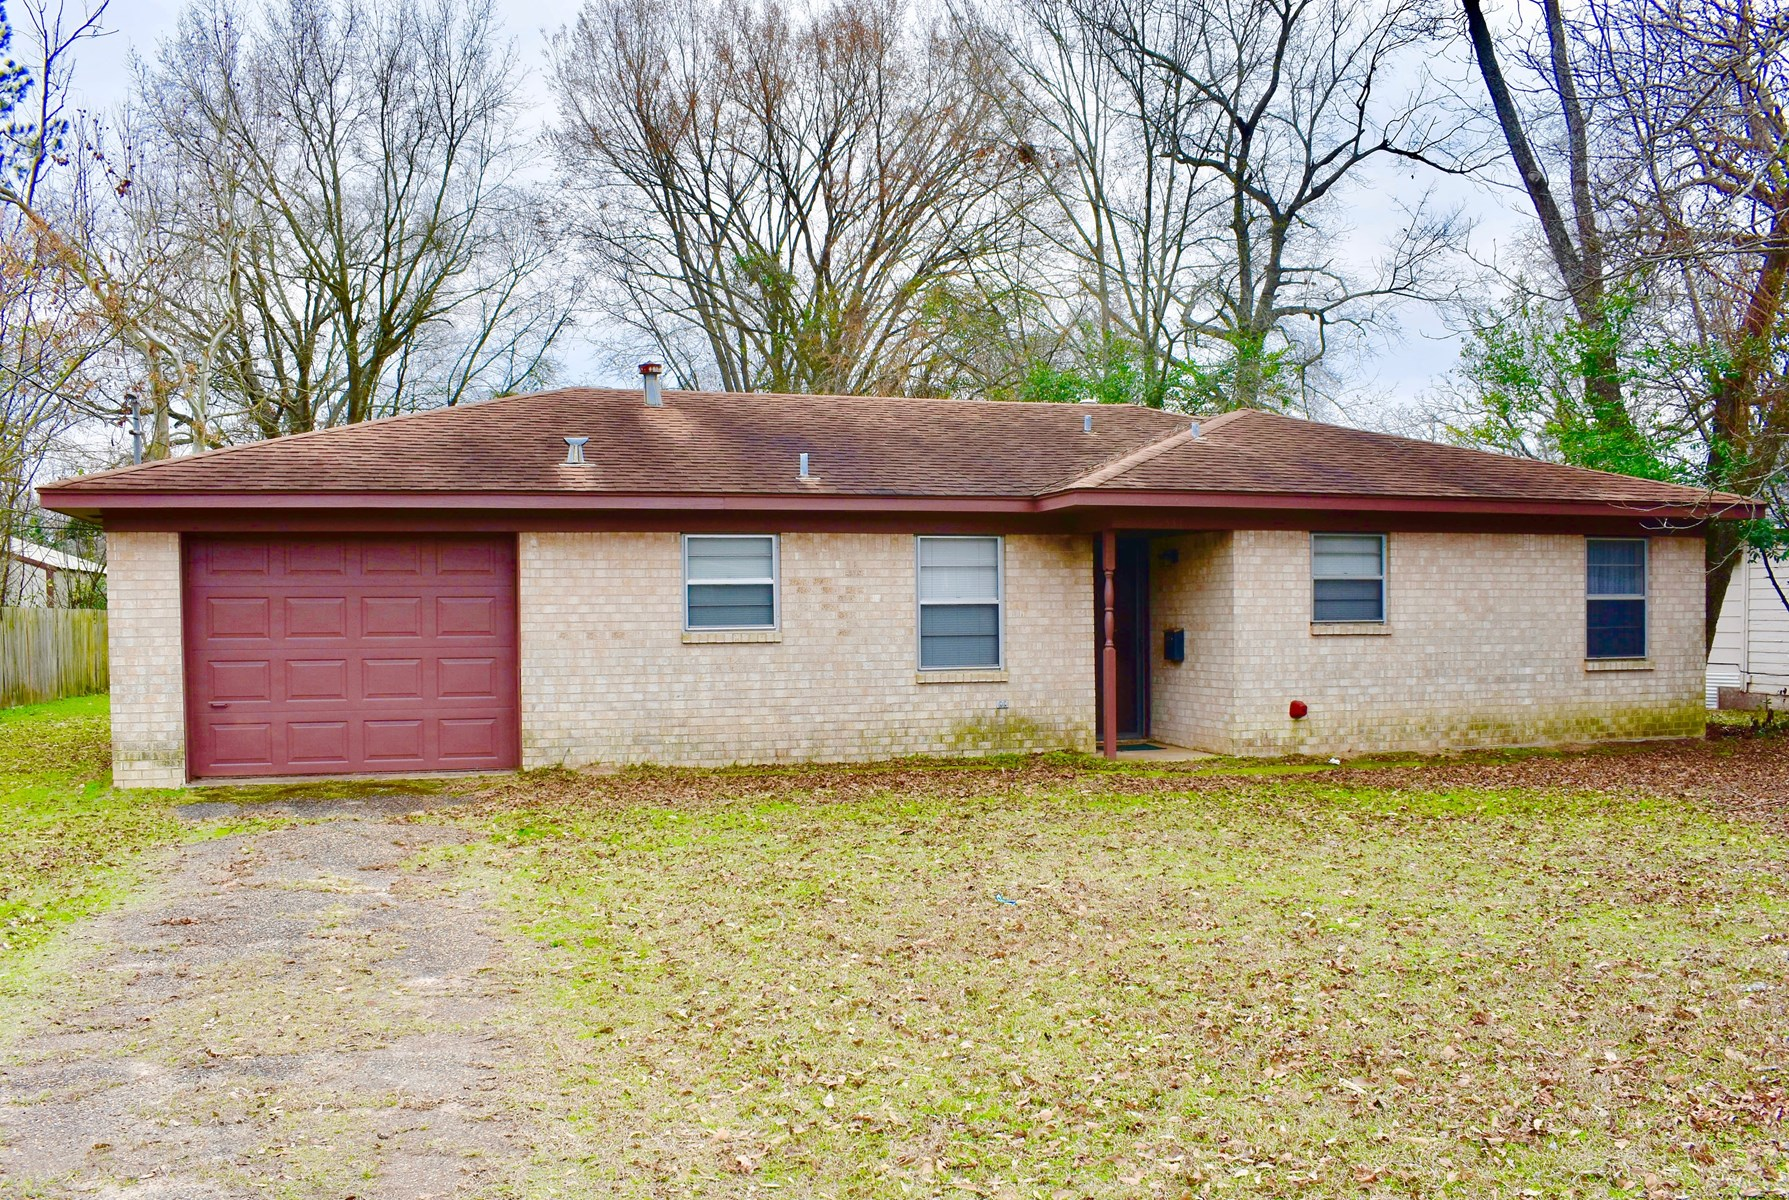 House for Sale Gilmer TX 2 bedroom Gilmer ISD Upshur County